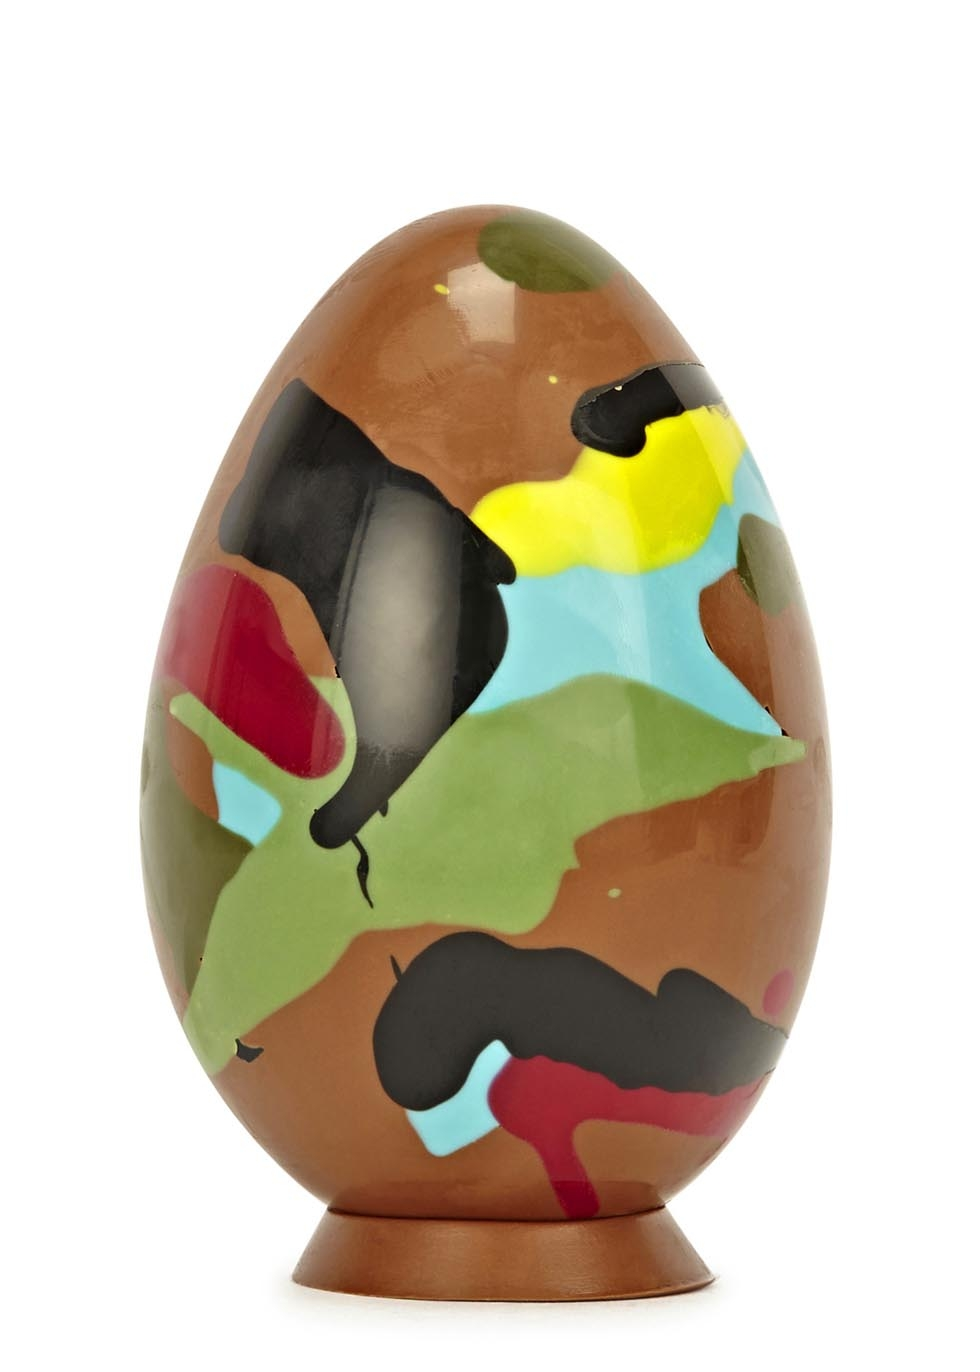 The Chocolate Society camouflage egg, £24.95